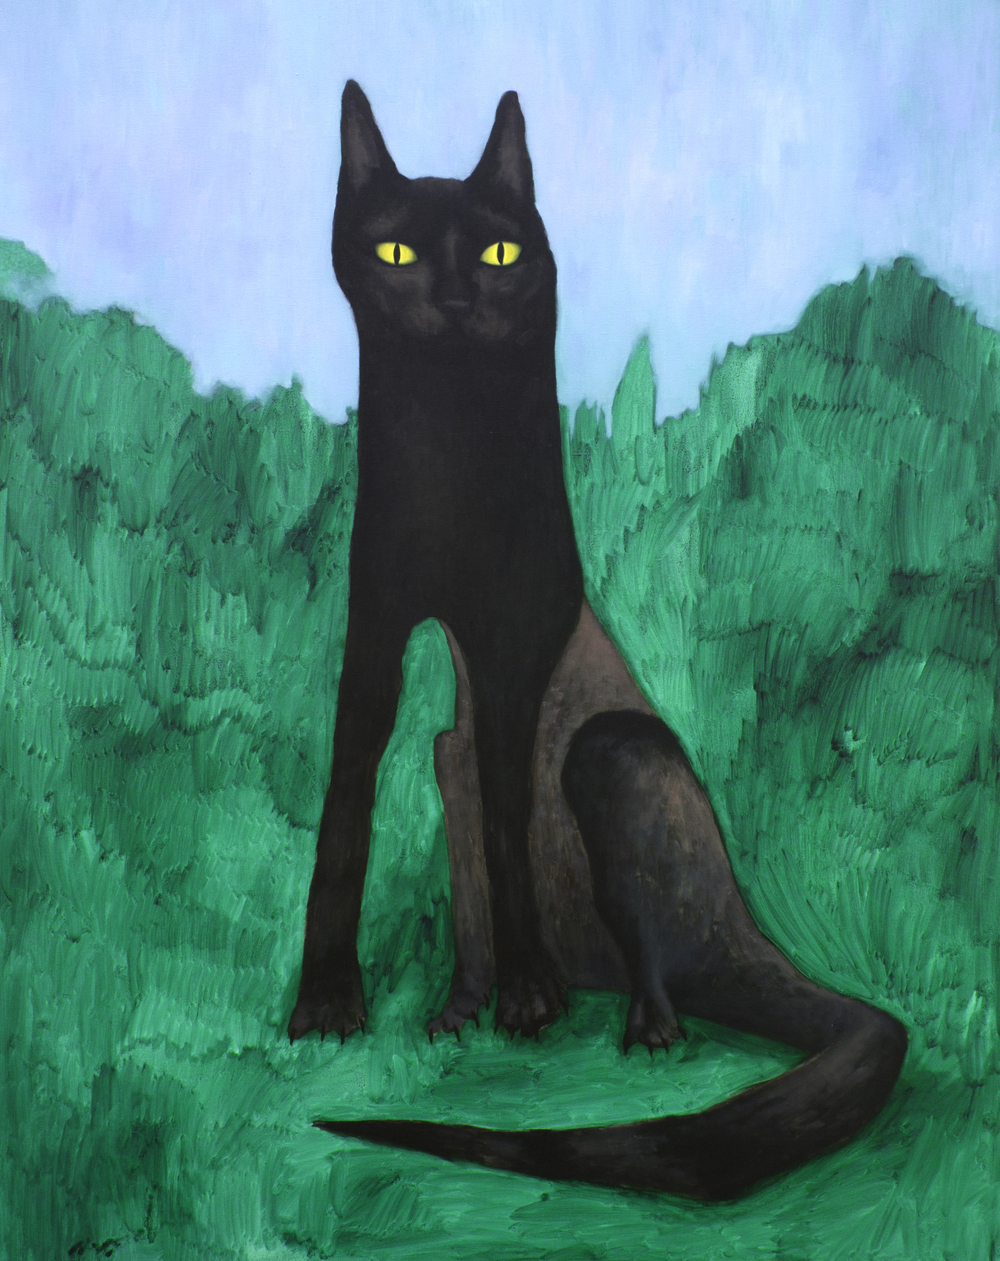 Paisaje con gato,  2014, Oil on canvas, 140 x 110 cm